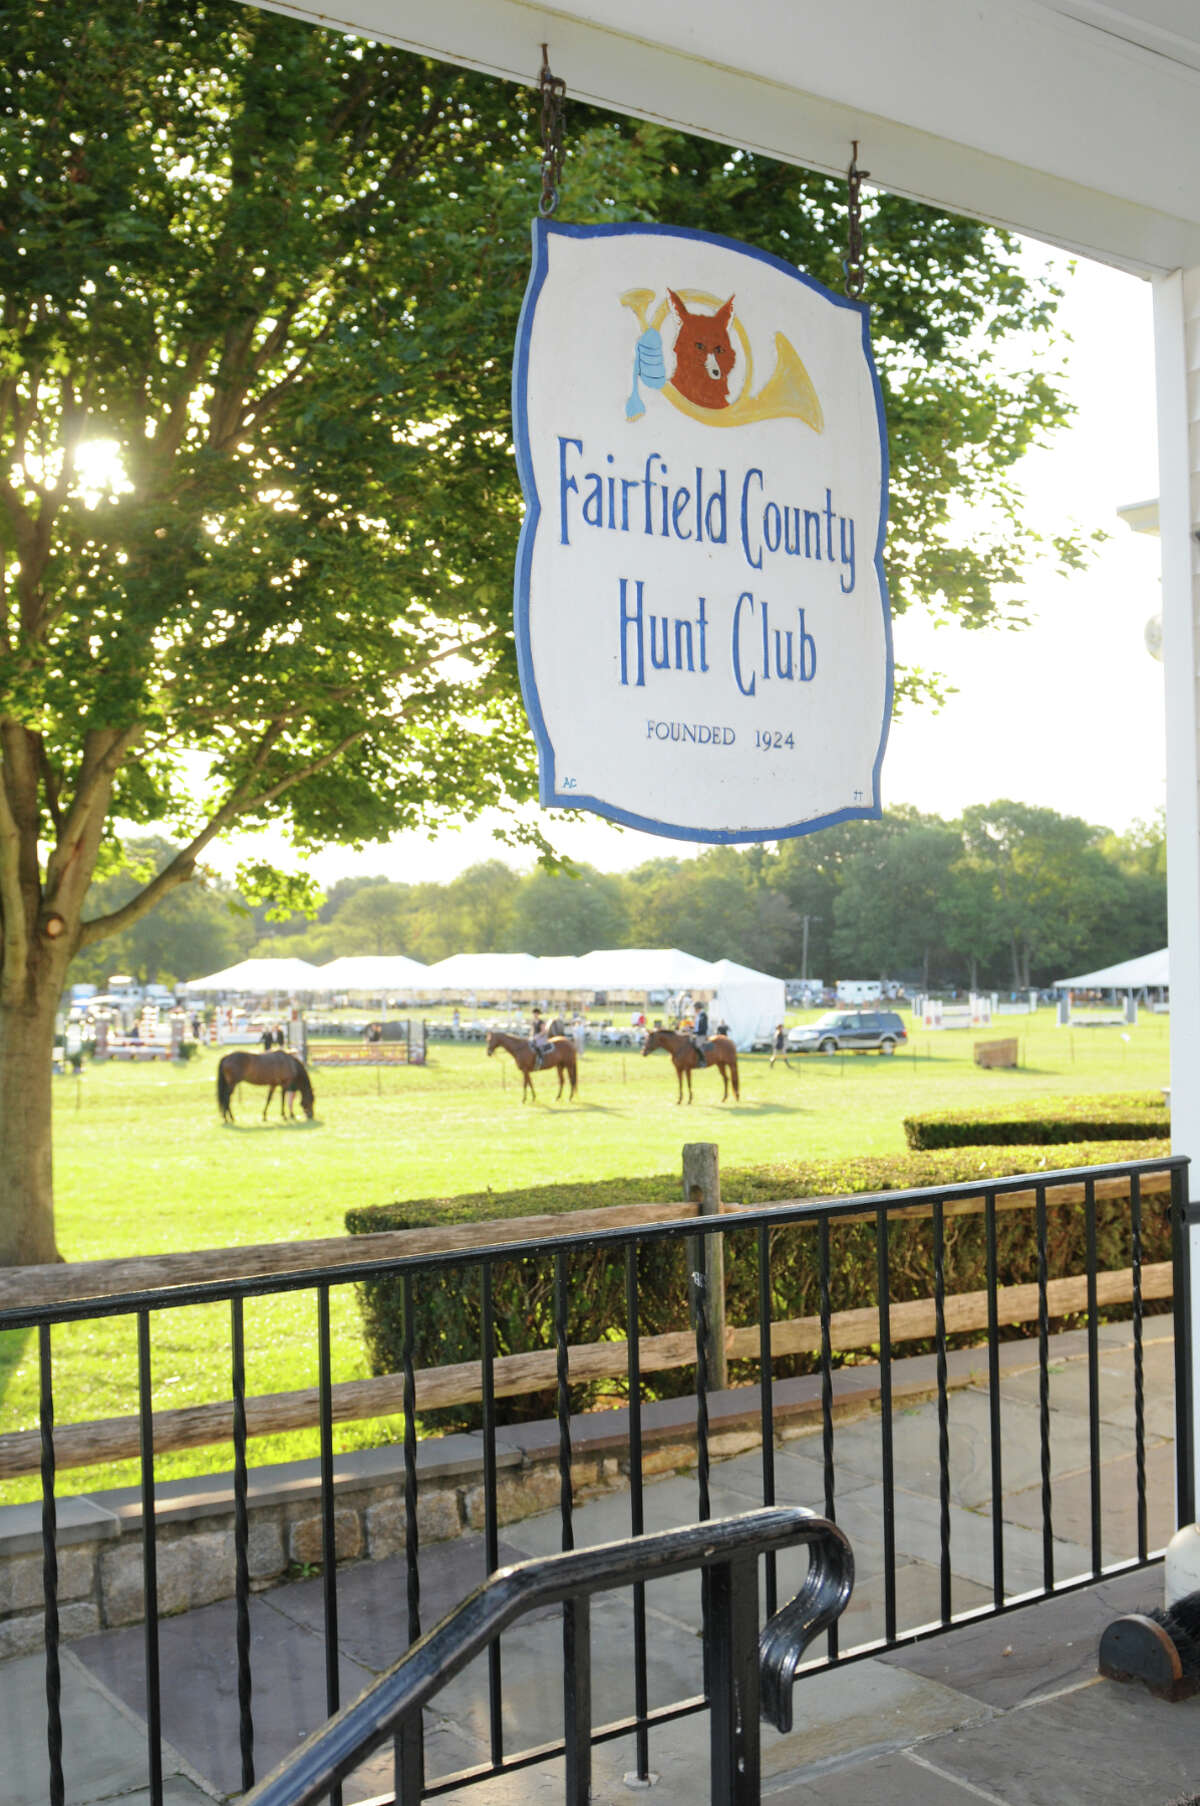 The 91st June Benefit Horse Show at the Fairfield County Hunt Club features many free events for families and horse-lovers today through Saturday (June19-21) in Westport.